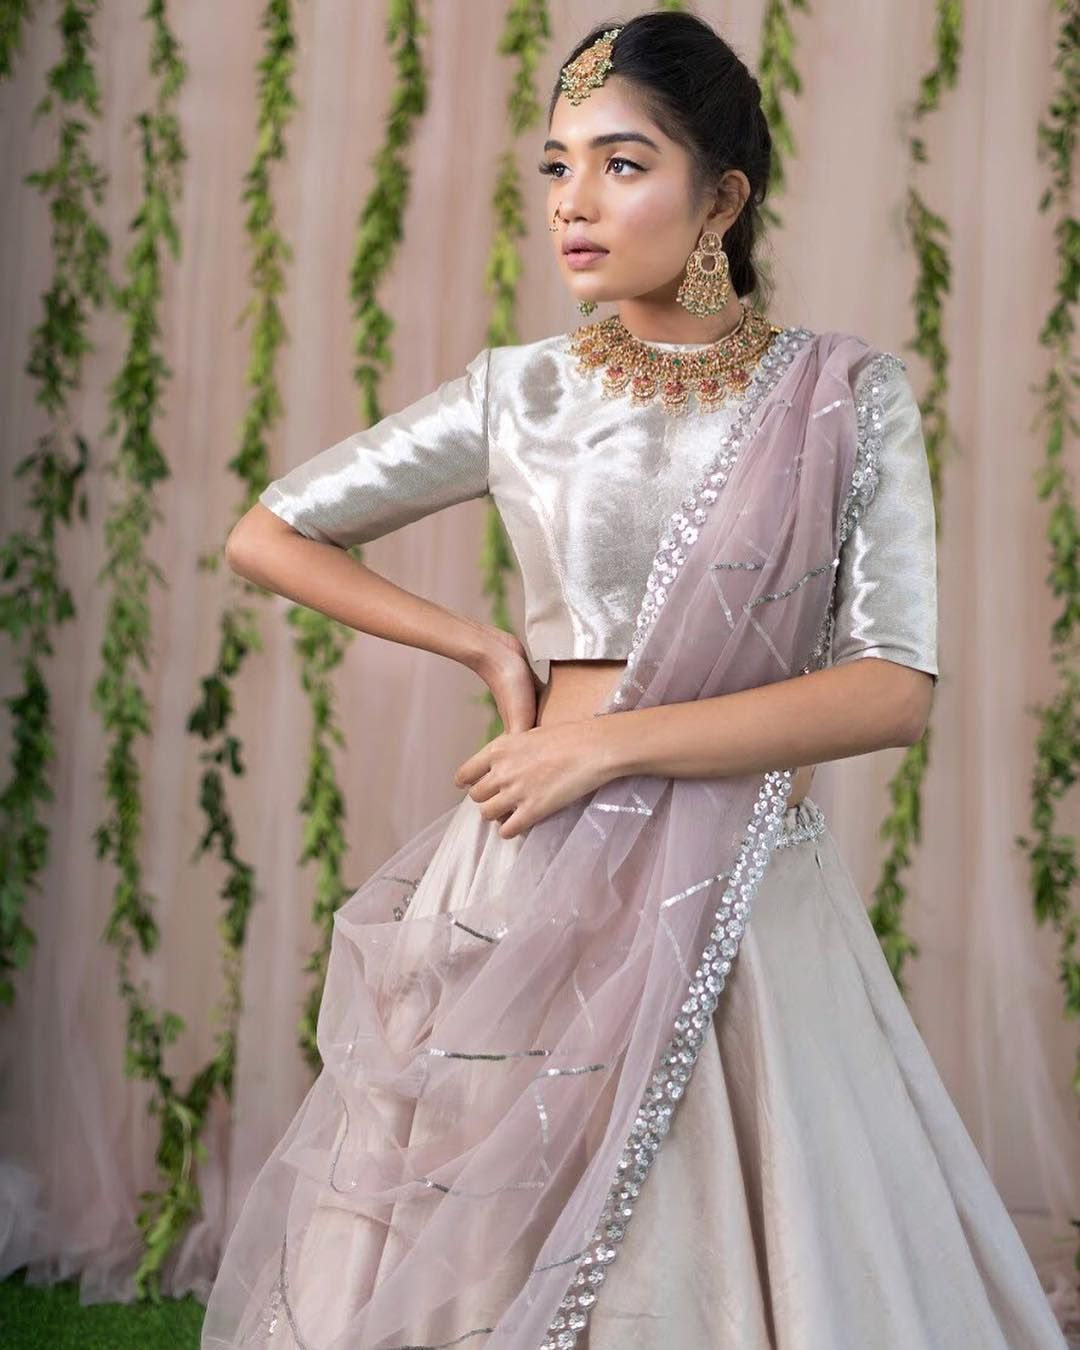 ac24776cf5 Stunning designer lehenga and silver blouse with lavender color net  dupatta. 06 February 2019